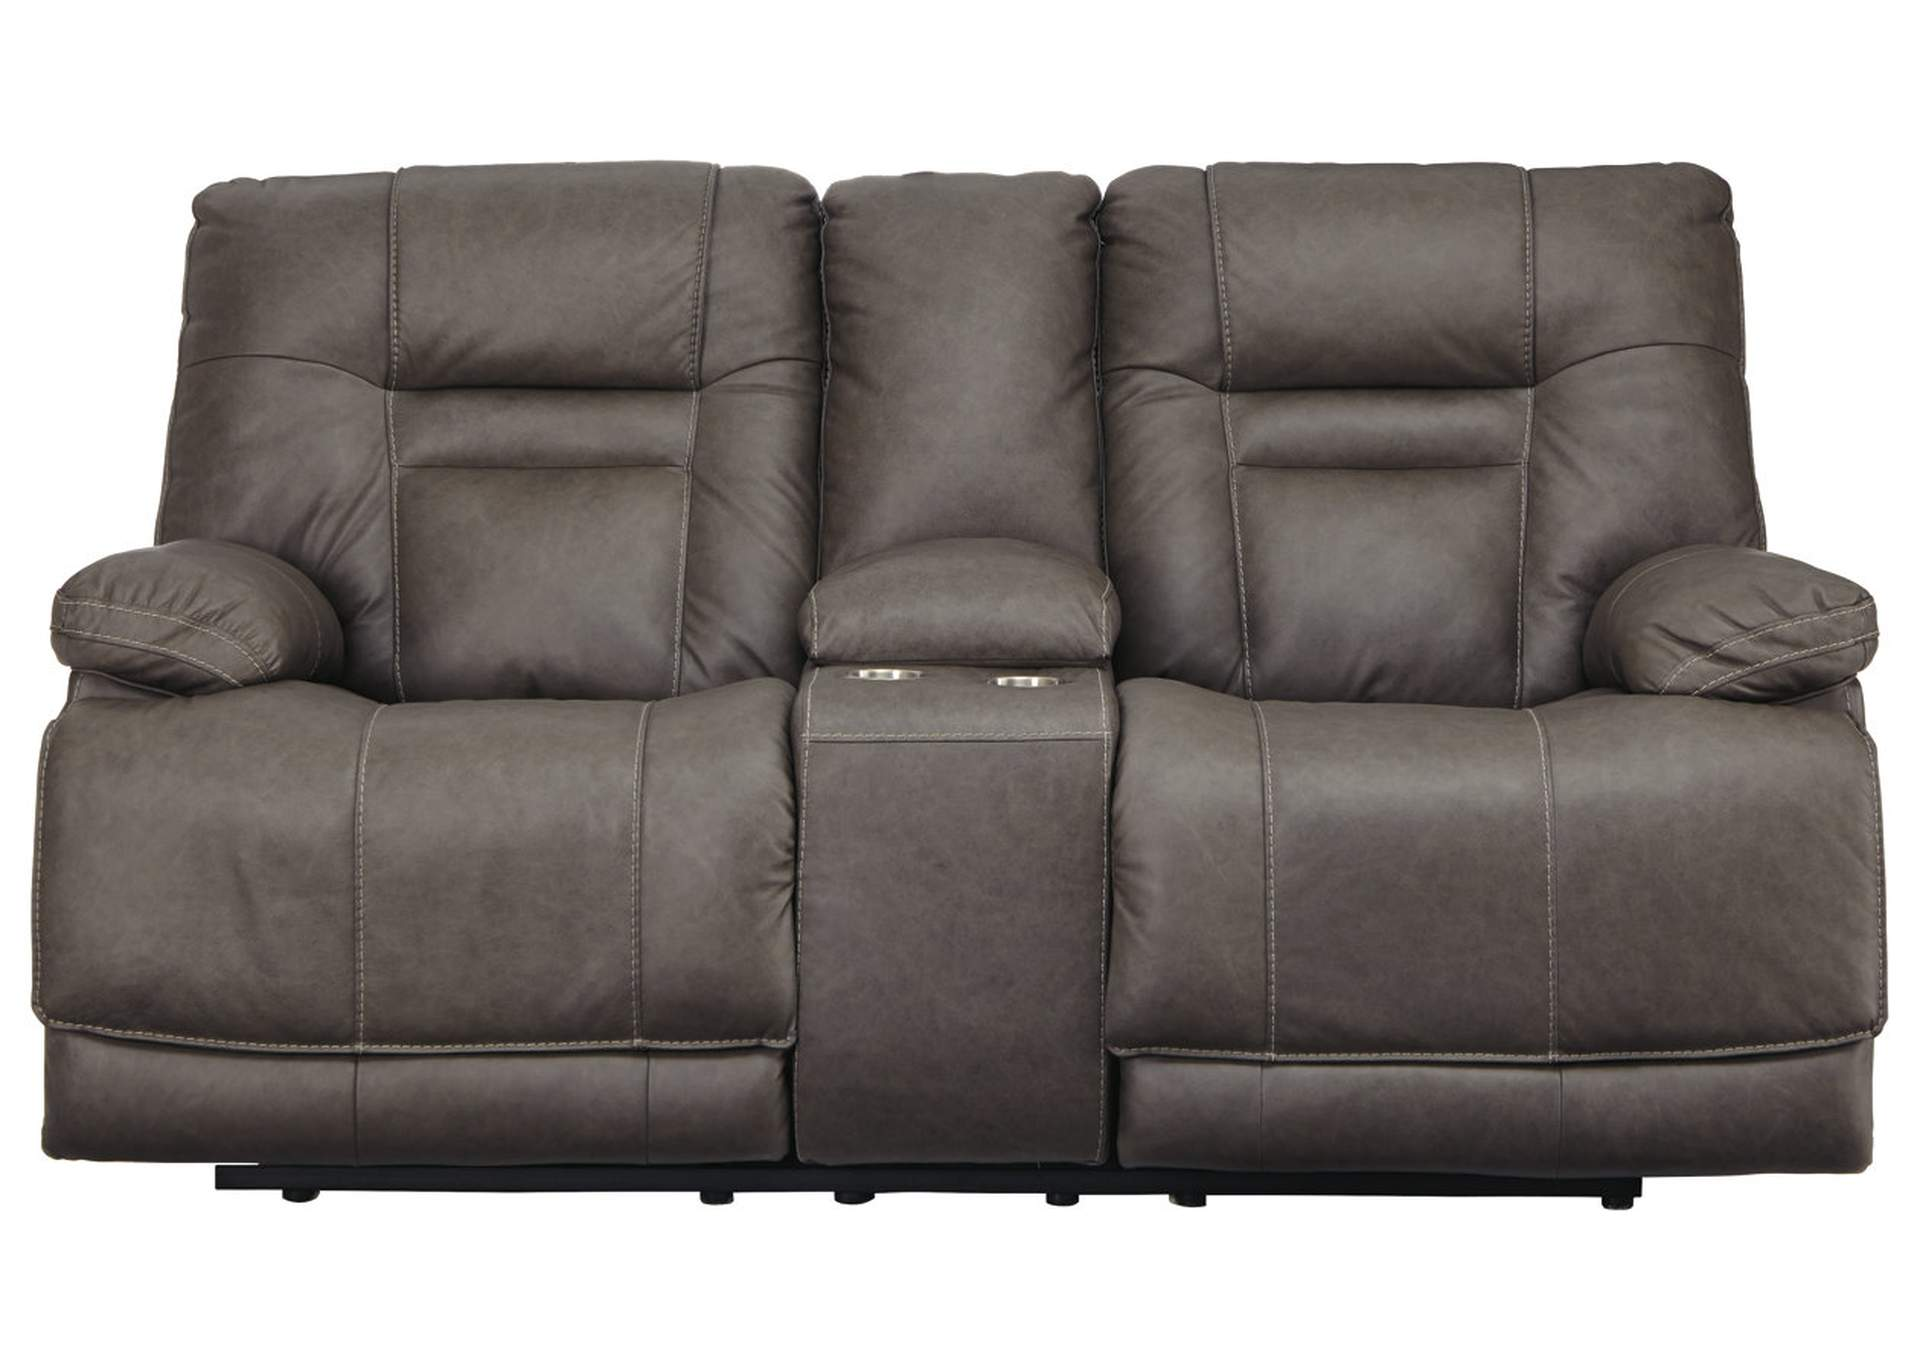 Admirable Ivan Smith Wurstrow Smoke Power Reclining Loveseat W Console Ibusinesslaw Wood Chair Design Ideas Ibusinesslaworg